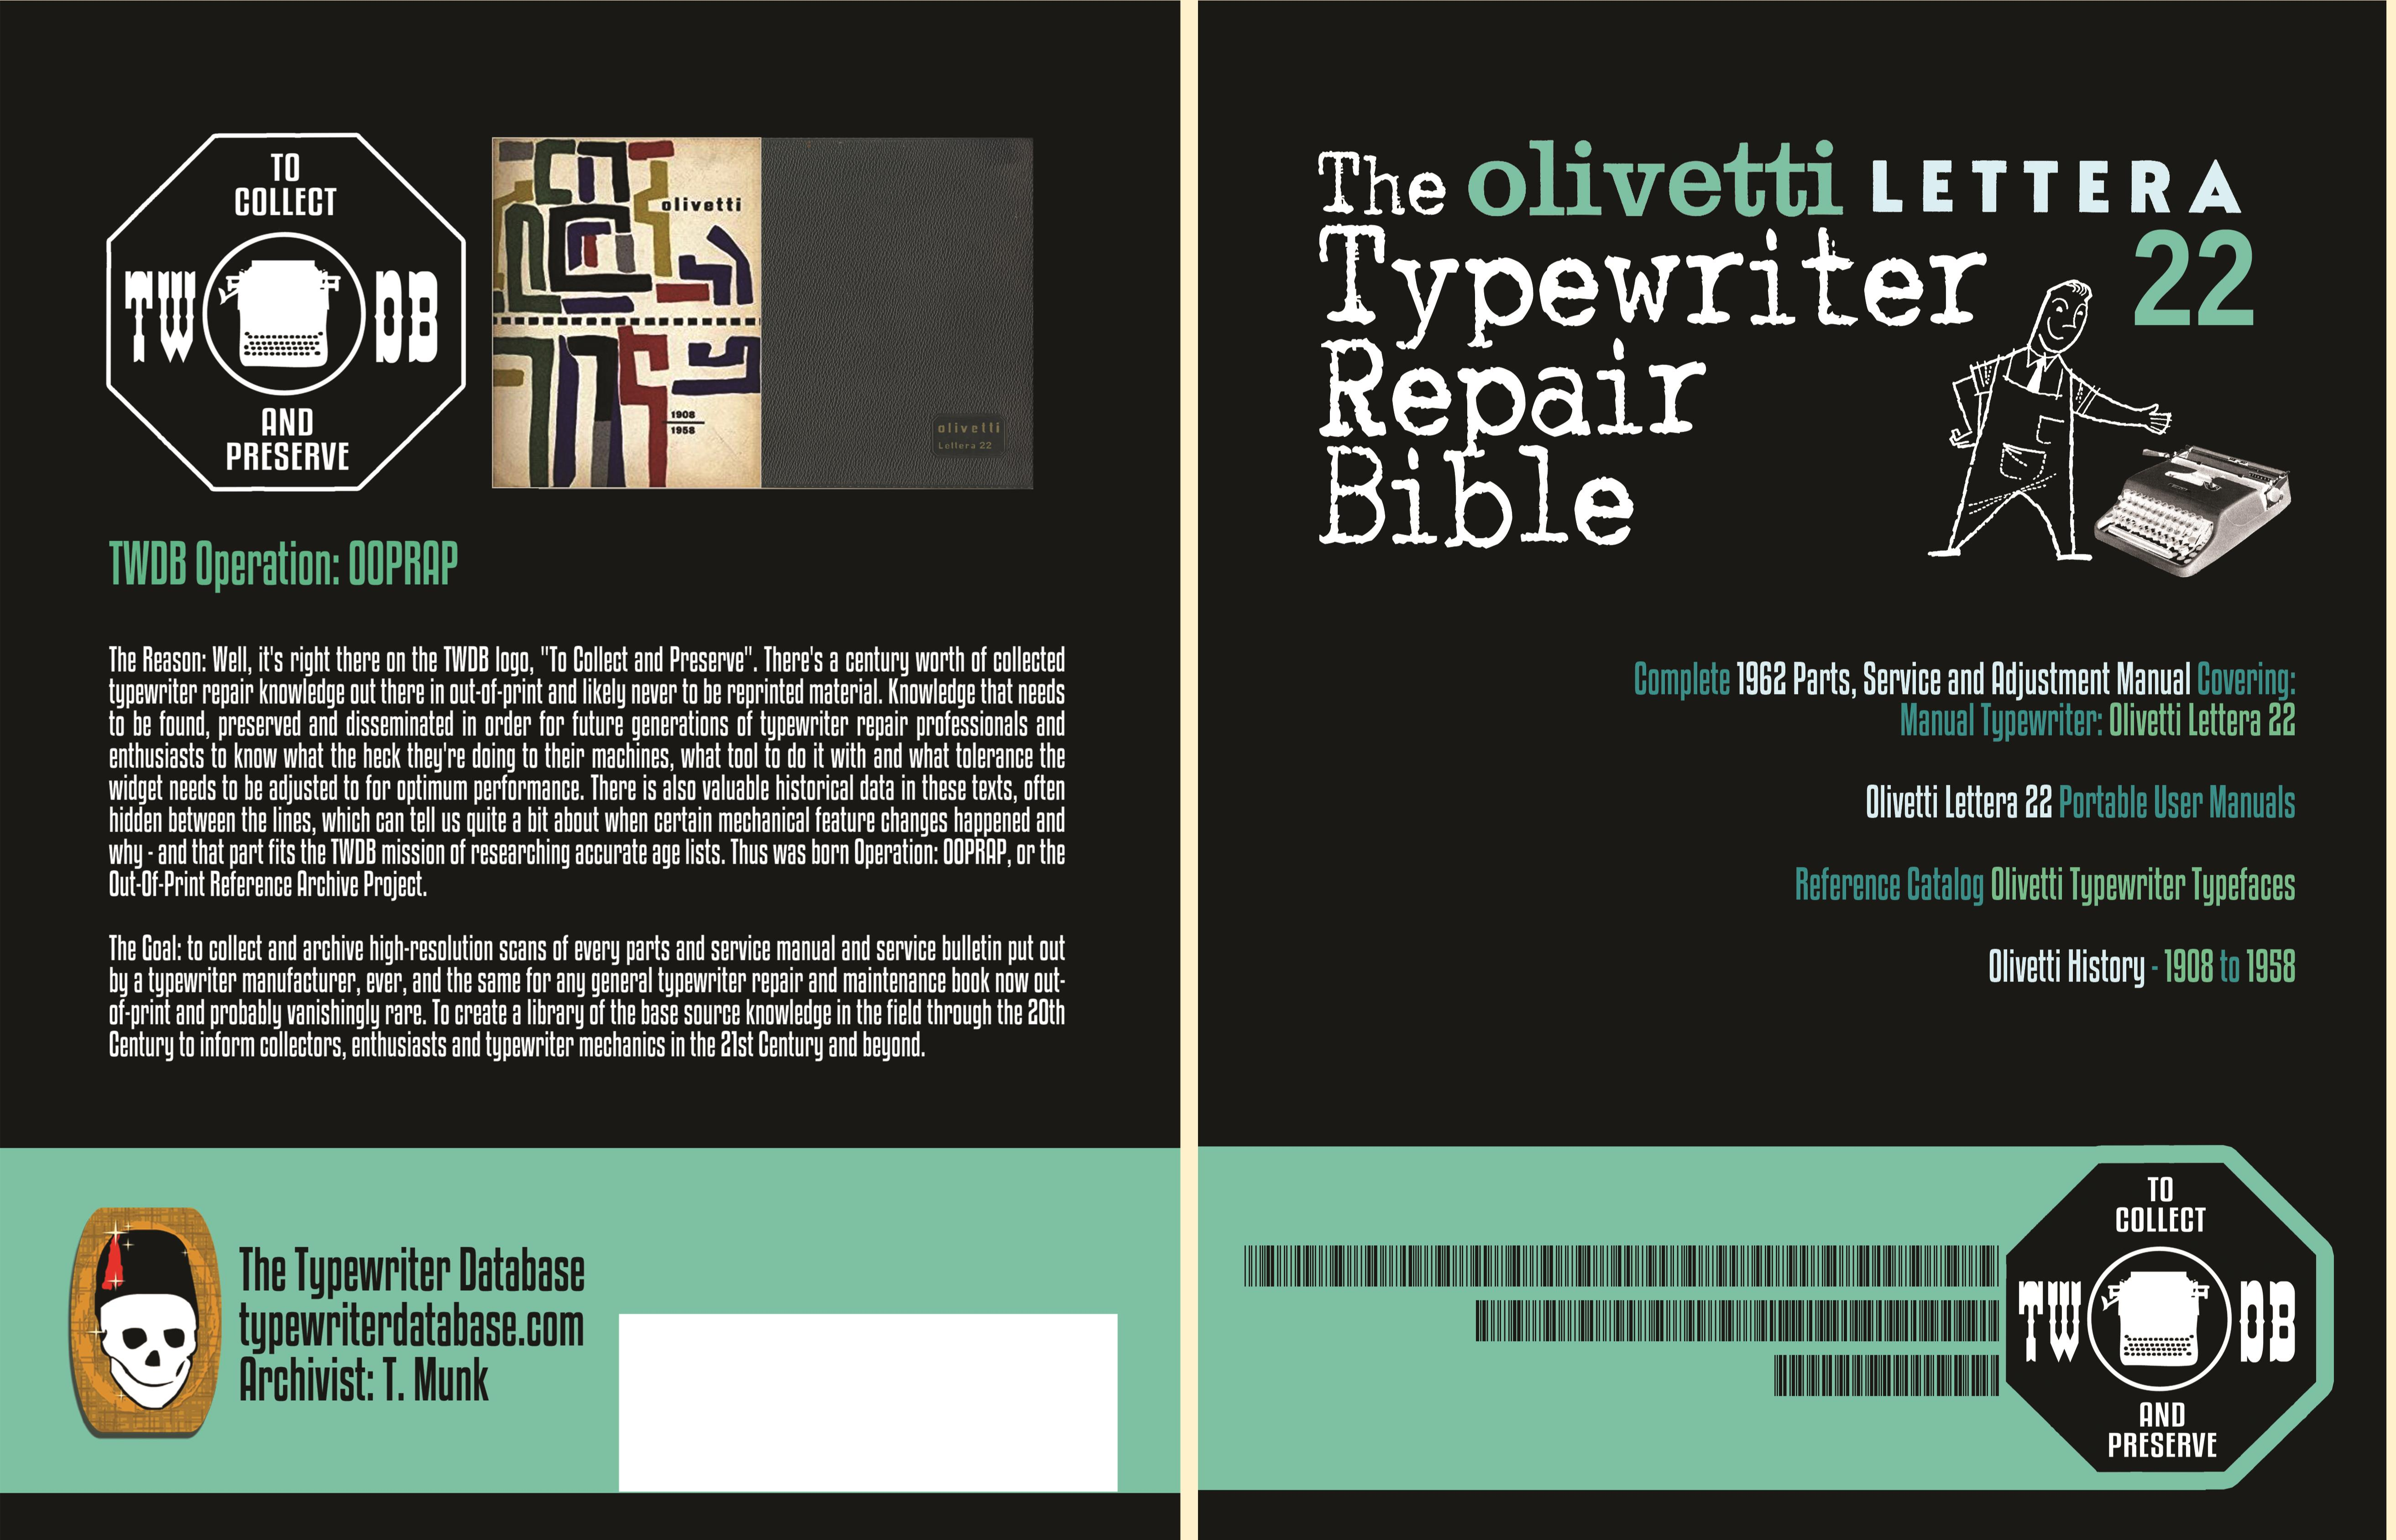 The Olivetti Lettera 22 Typewriter Repair Bible cover image